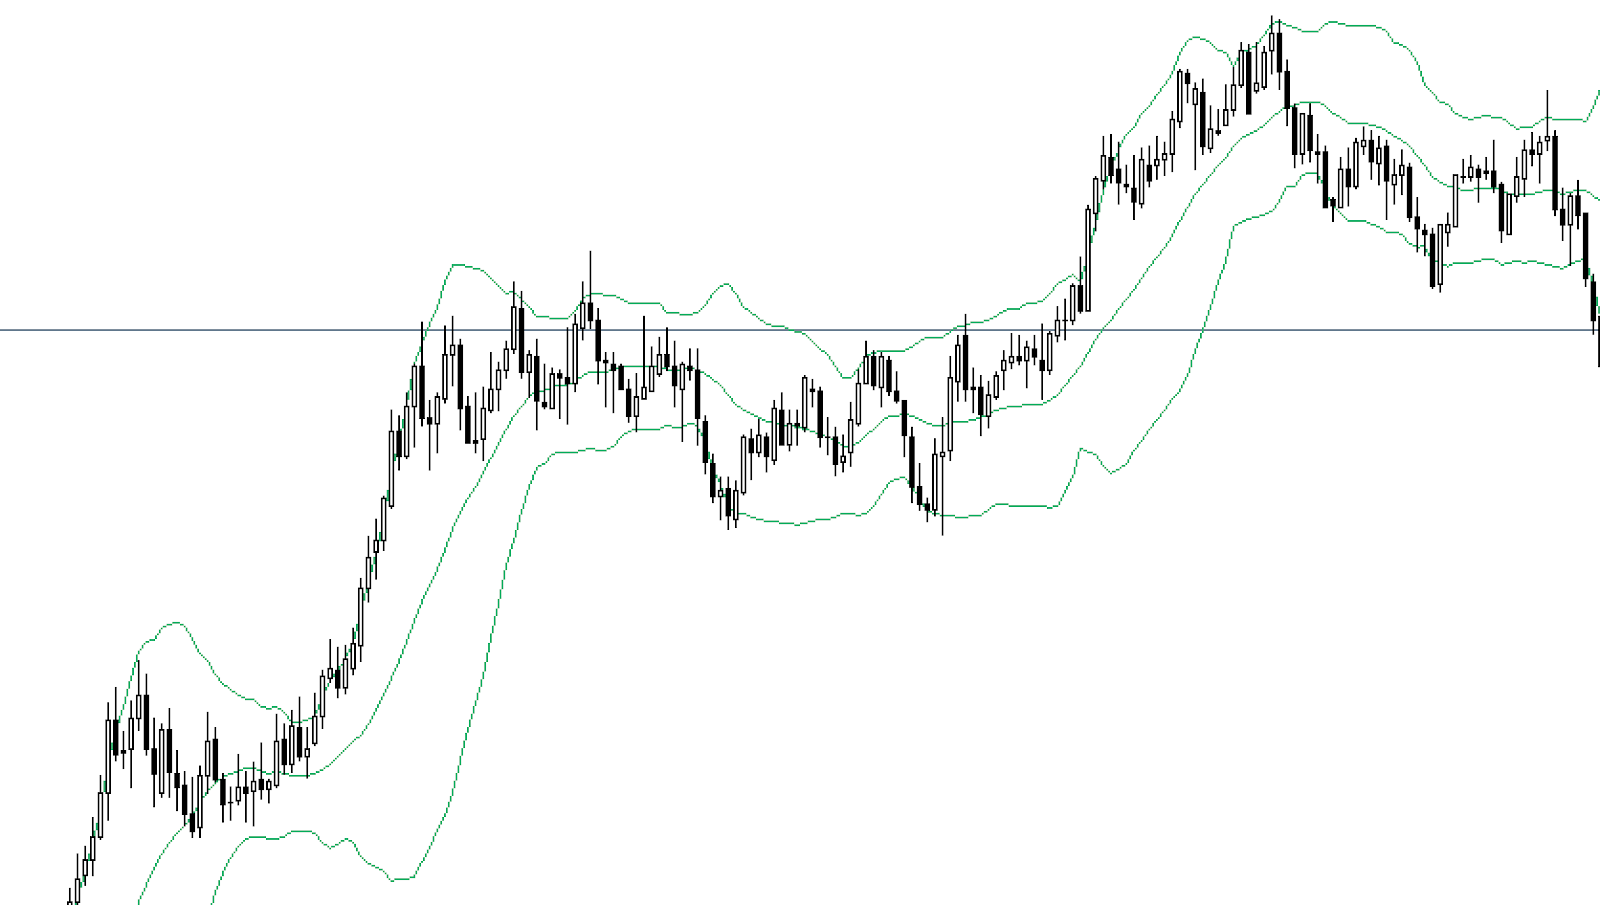 image of a Bollinger Band on the chart